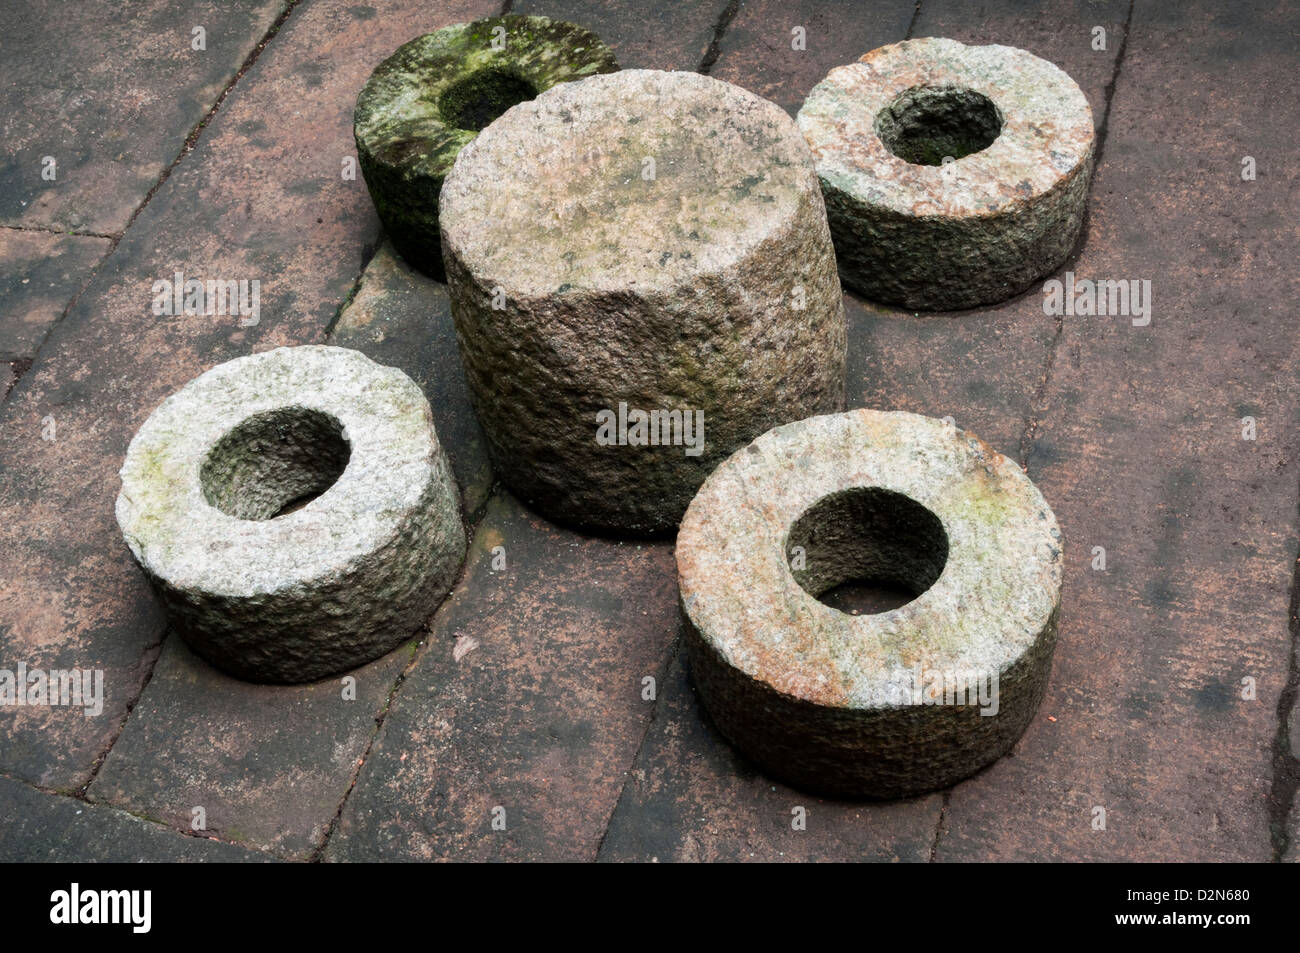 Grinding stone - Ancient utensils used in kerala - Stock Image